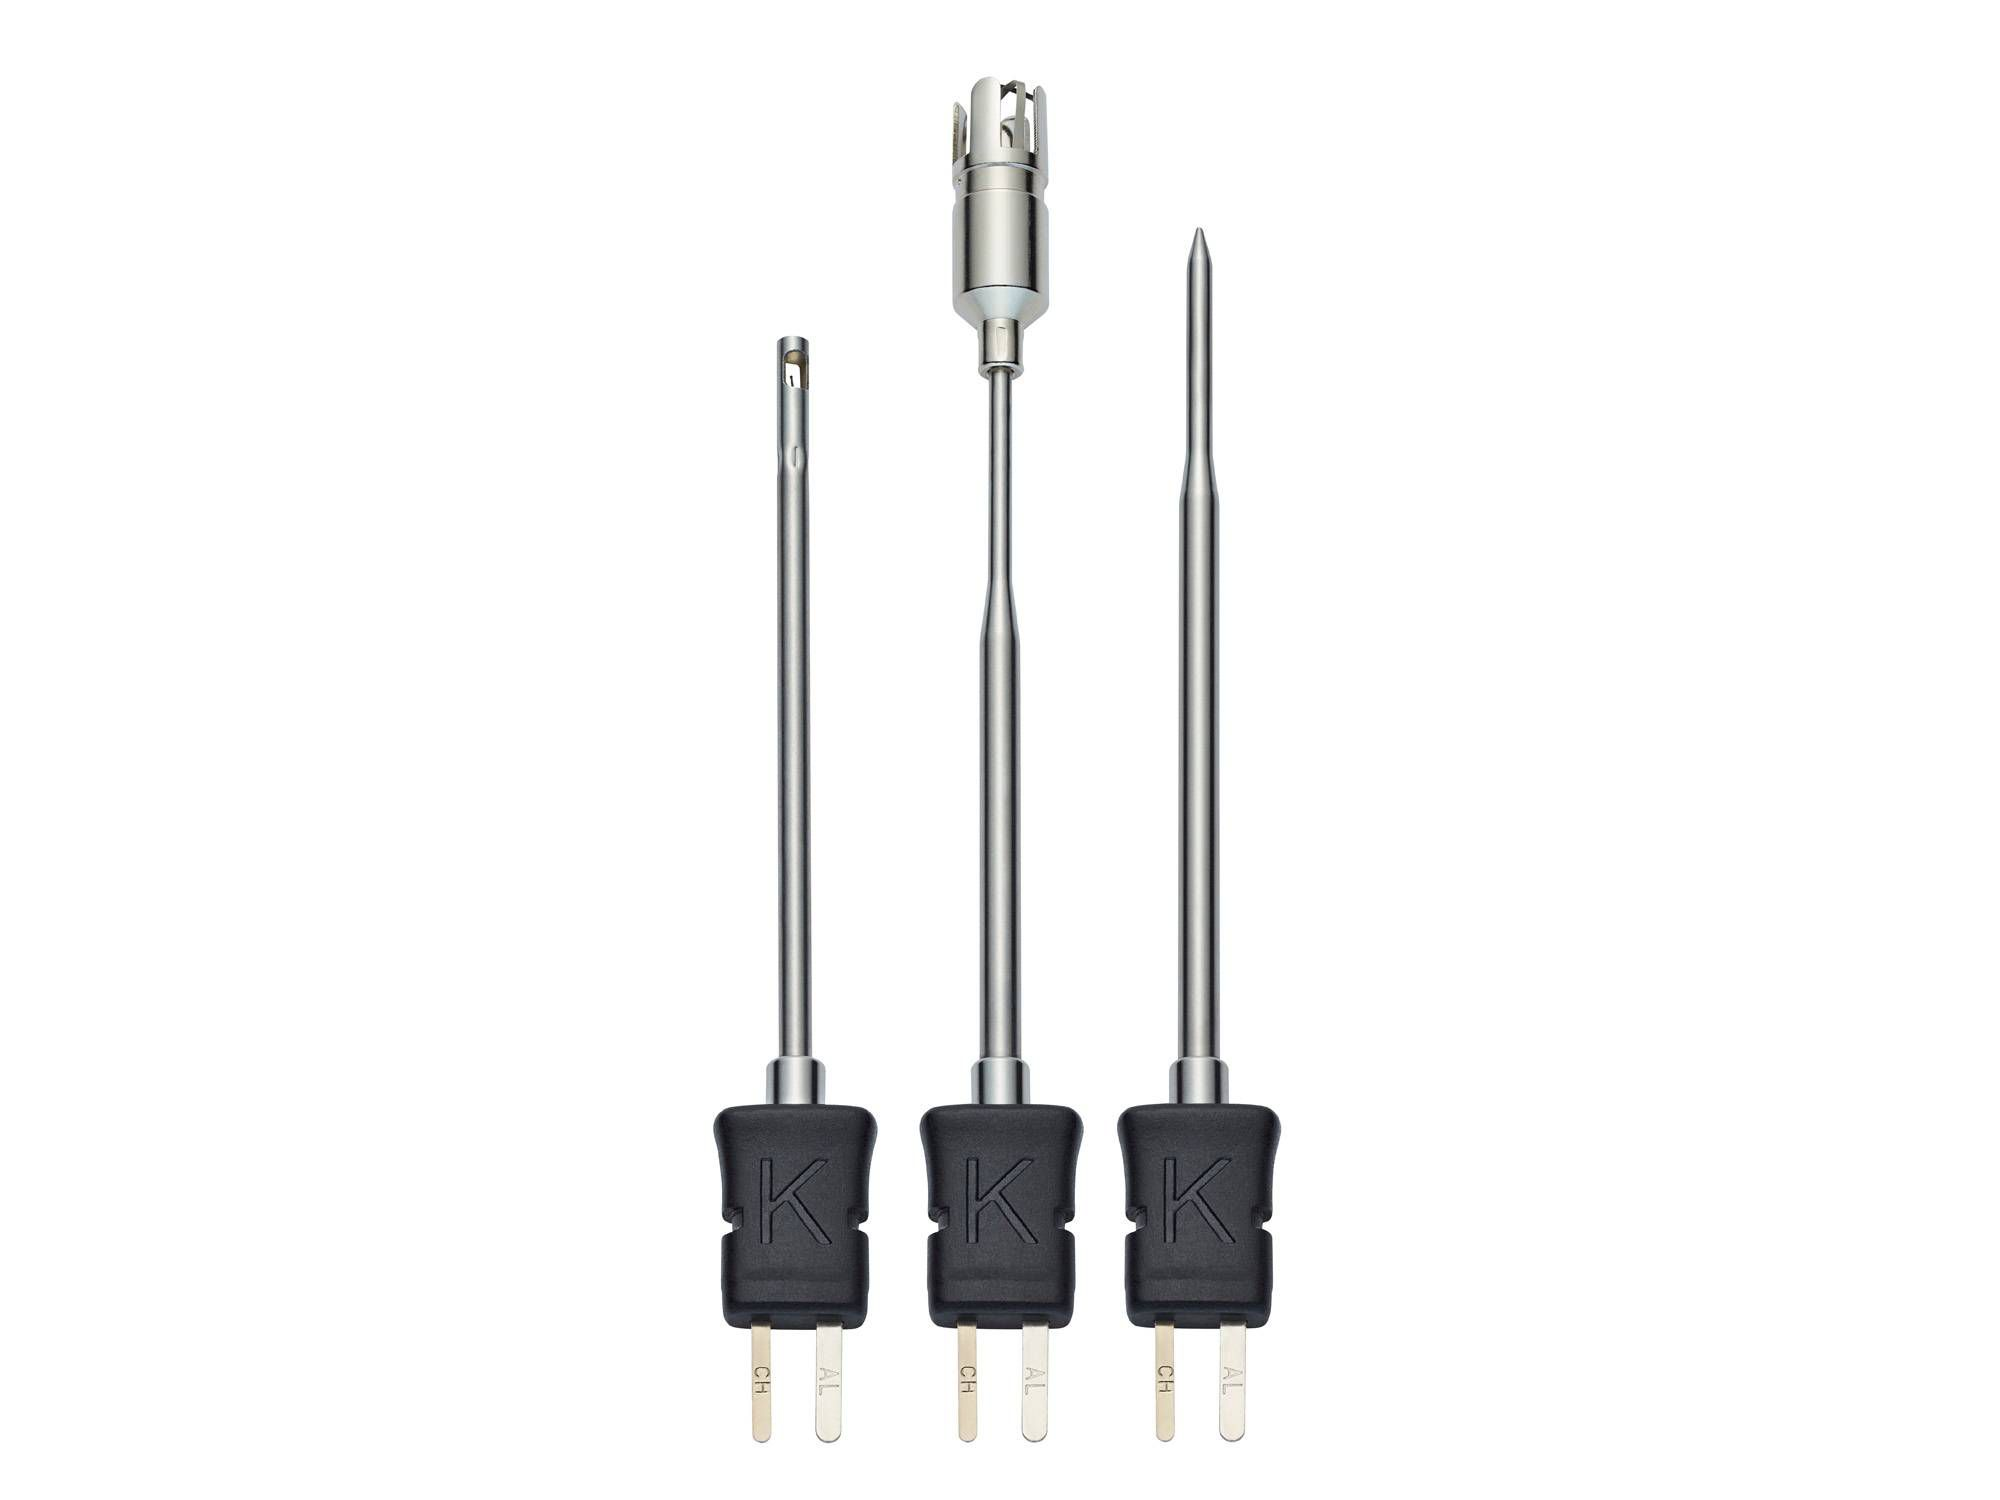 Temperature probe kit